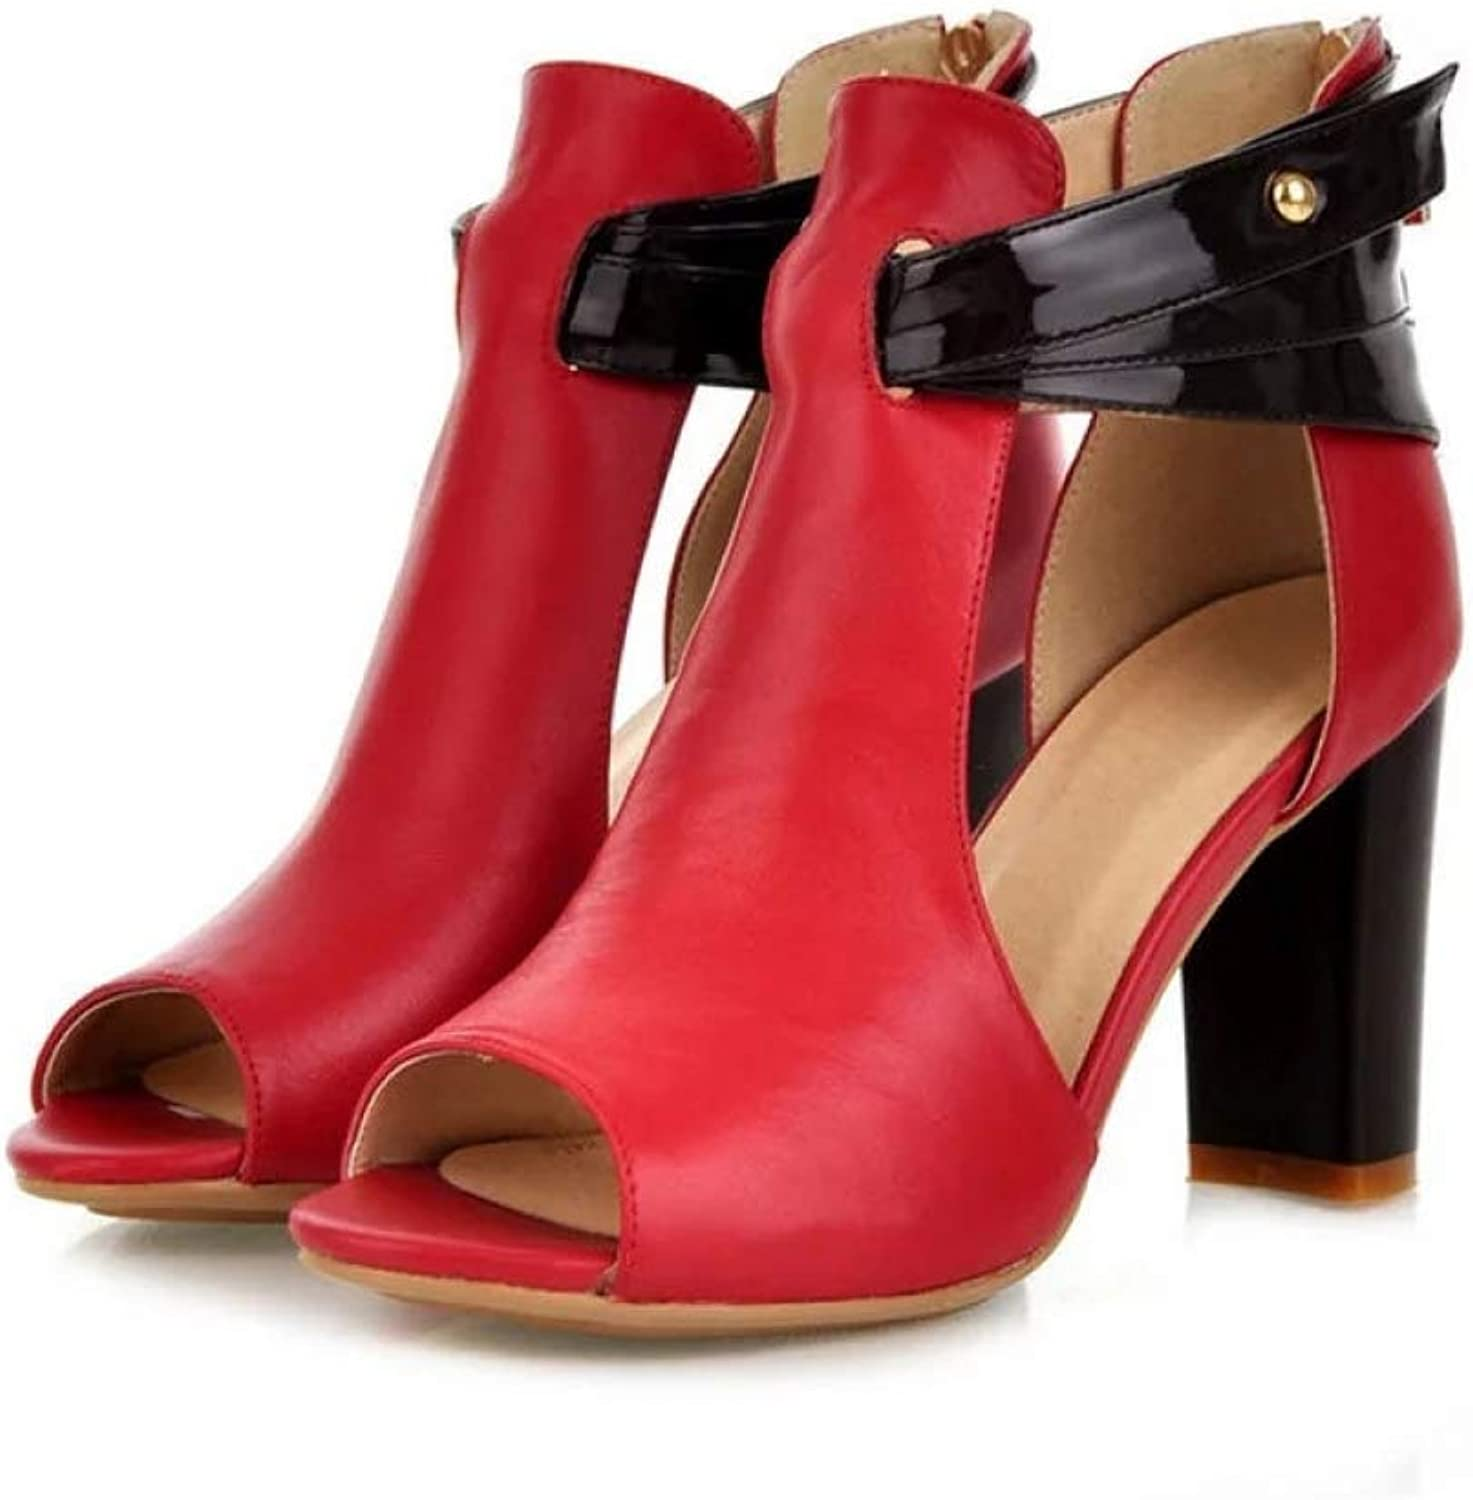 T-JULY Sexy High Heels Gladiator Sandals Women Spring Summer Pumps shoes Peep Toe Soft Leather Square Heel Sandalias